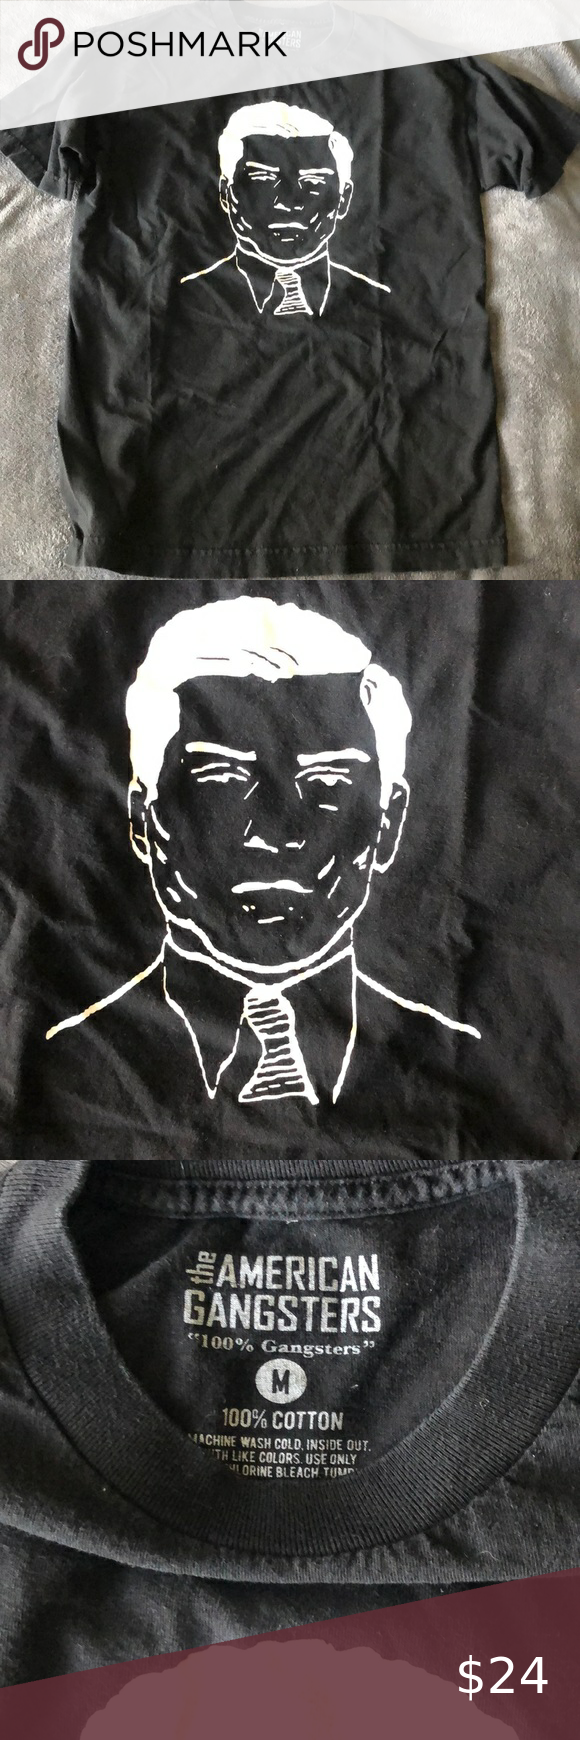 Lucky Luciano Shirt The American Gangsters Lucky Luciano Tee Size Medium Black With White Screen Print Graphic On Front The Shirts Gangster Shirt Tee Shirts